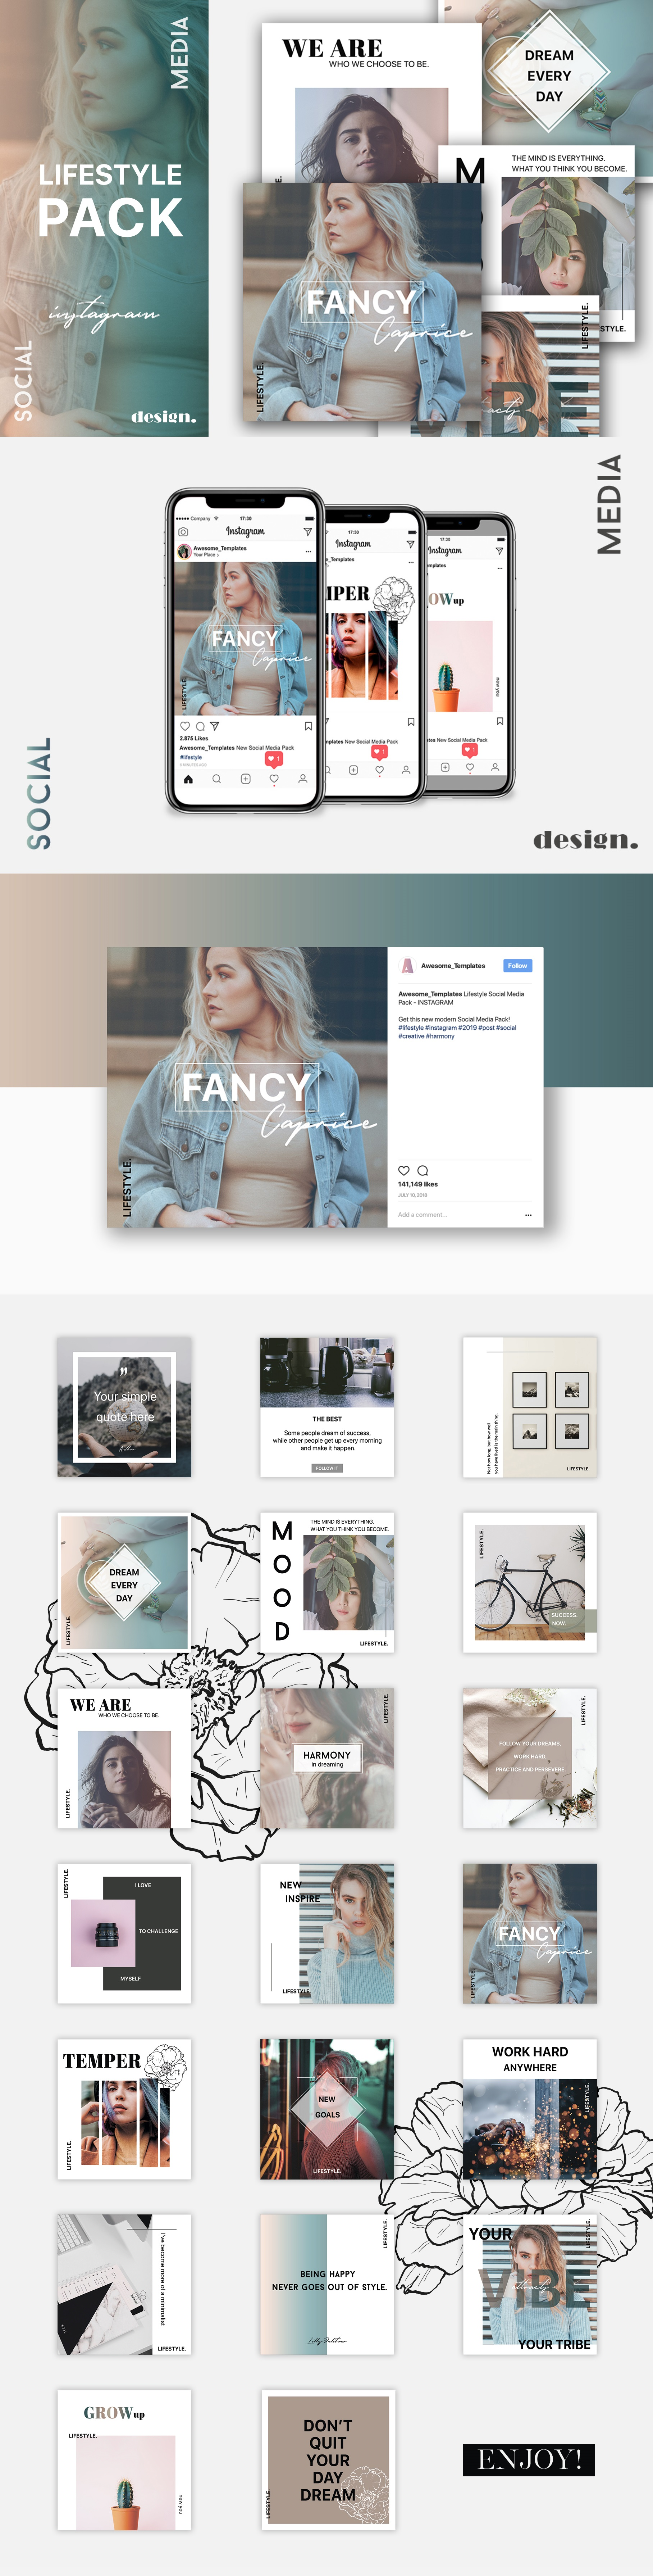 Lifestyle Instagram Template Set example image 5